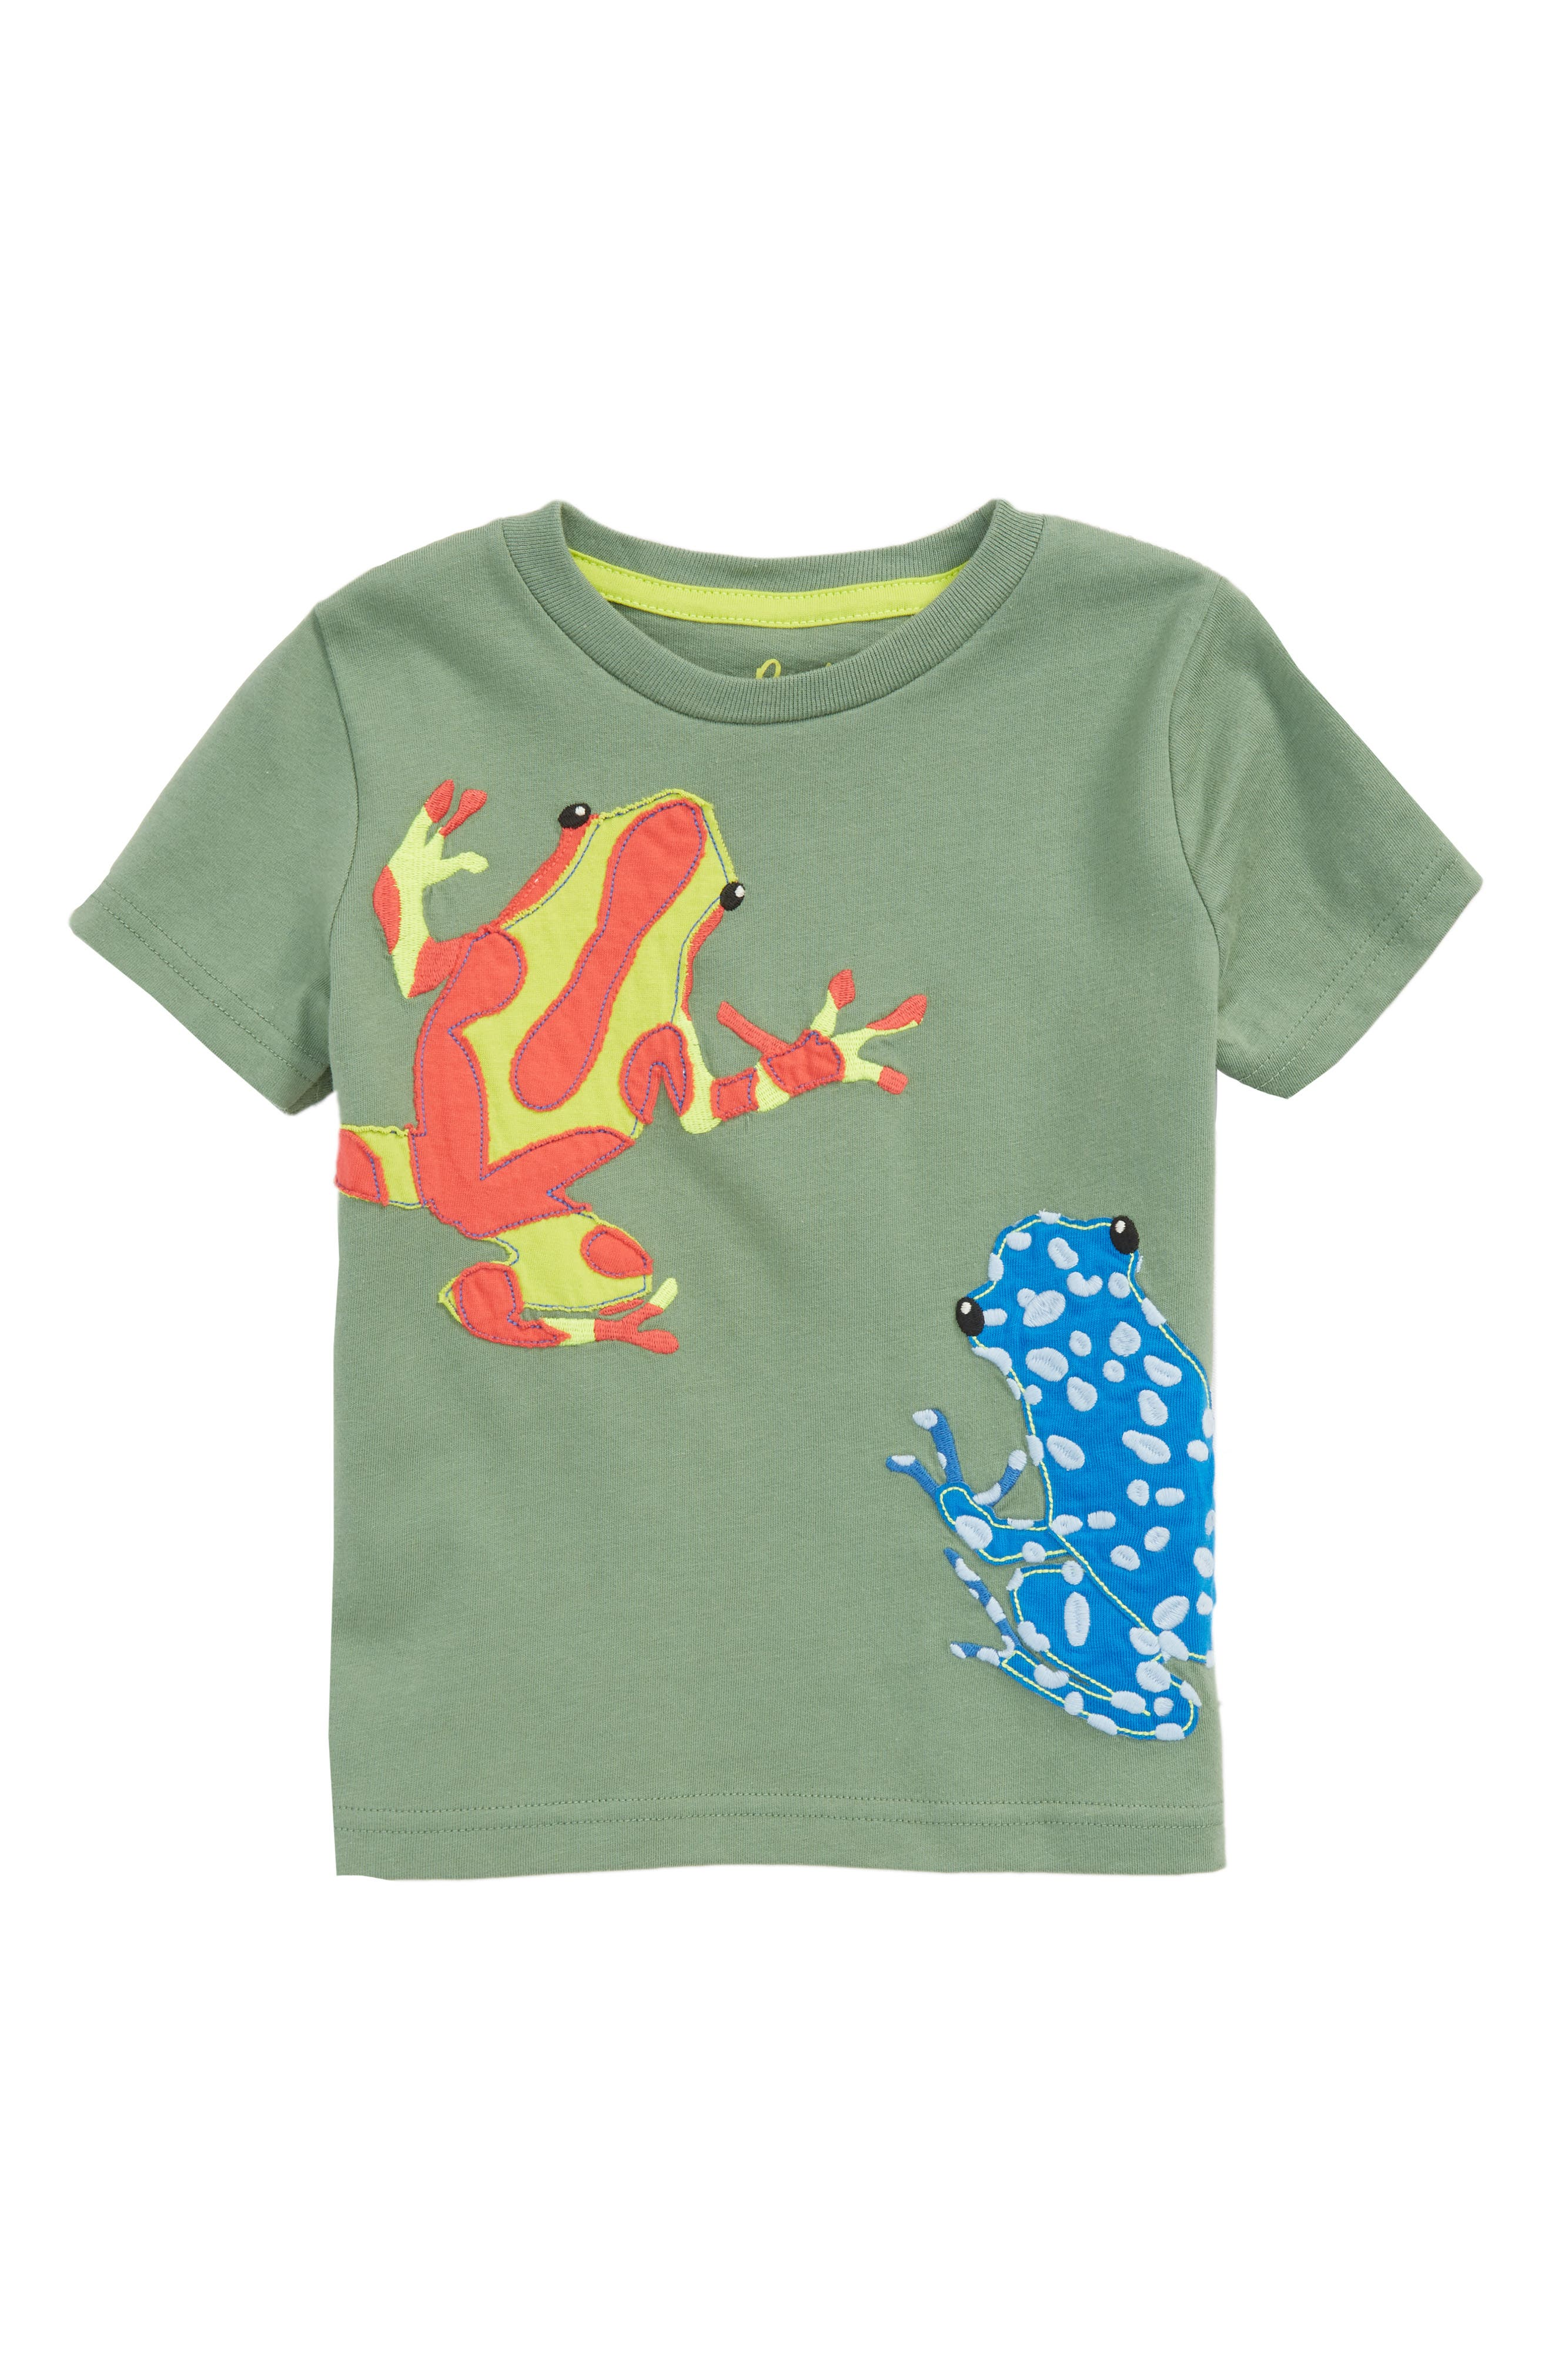 Frogs Appliqué T-Shirt,                         Main,                         color, Bamboo Green Frogs